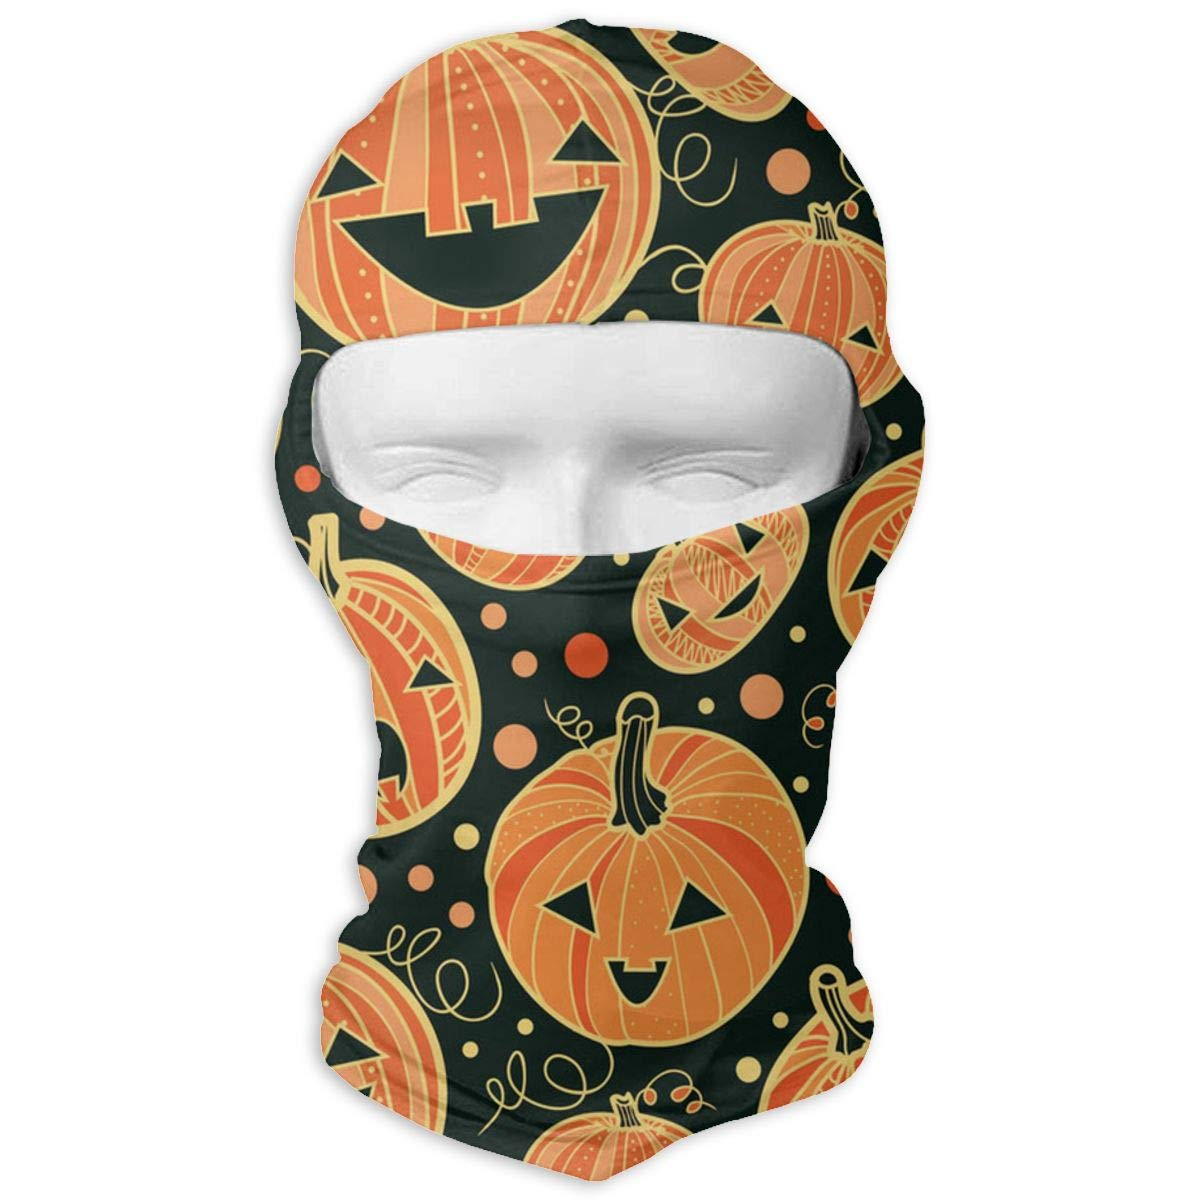 Men & Women Winter Balaclava Pumpkin Patterns Windproof Helmet Liner Mask Polyester Multipurpose Head Wrap for Motorcycle, Snowboard, Cycling, Sports